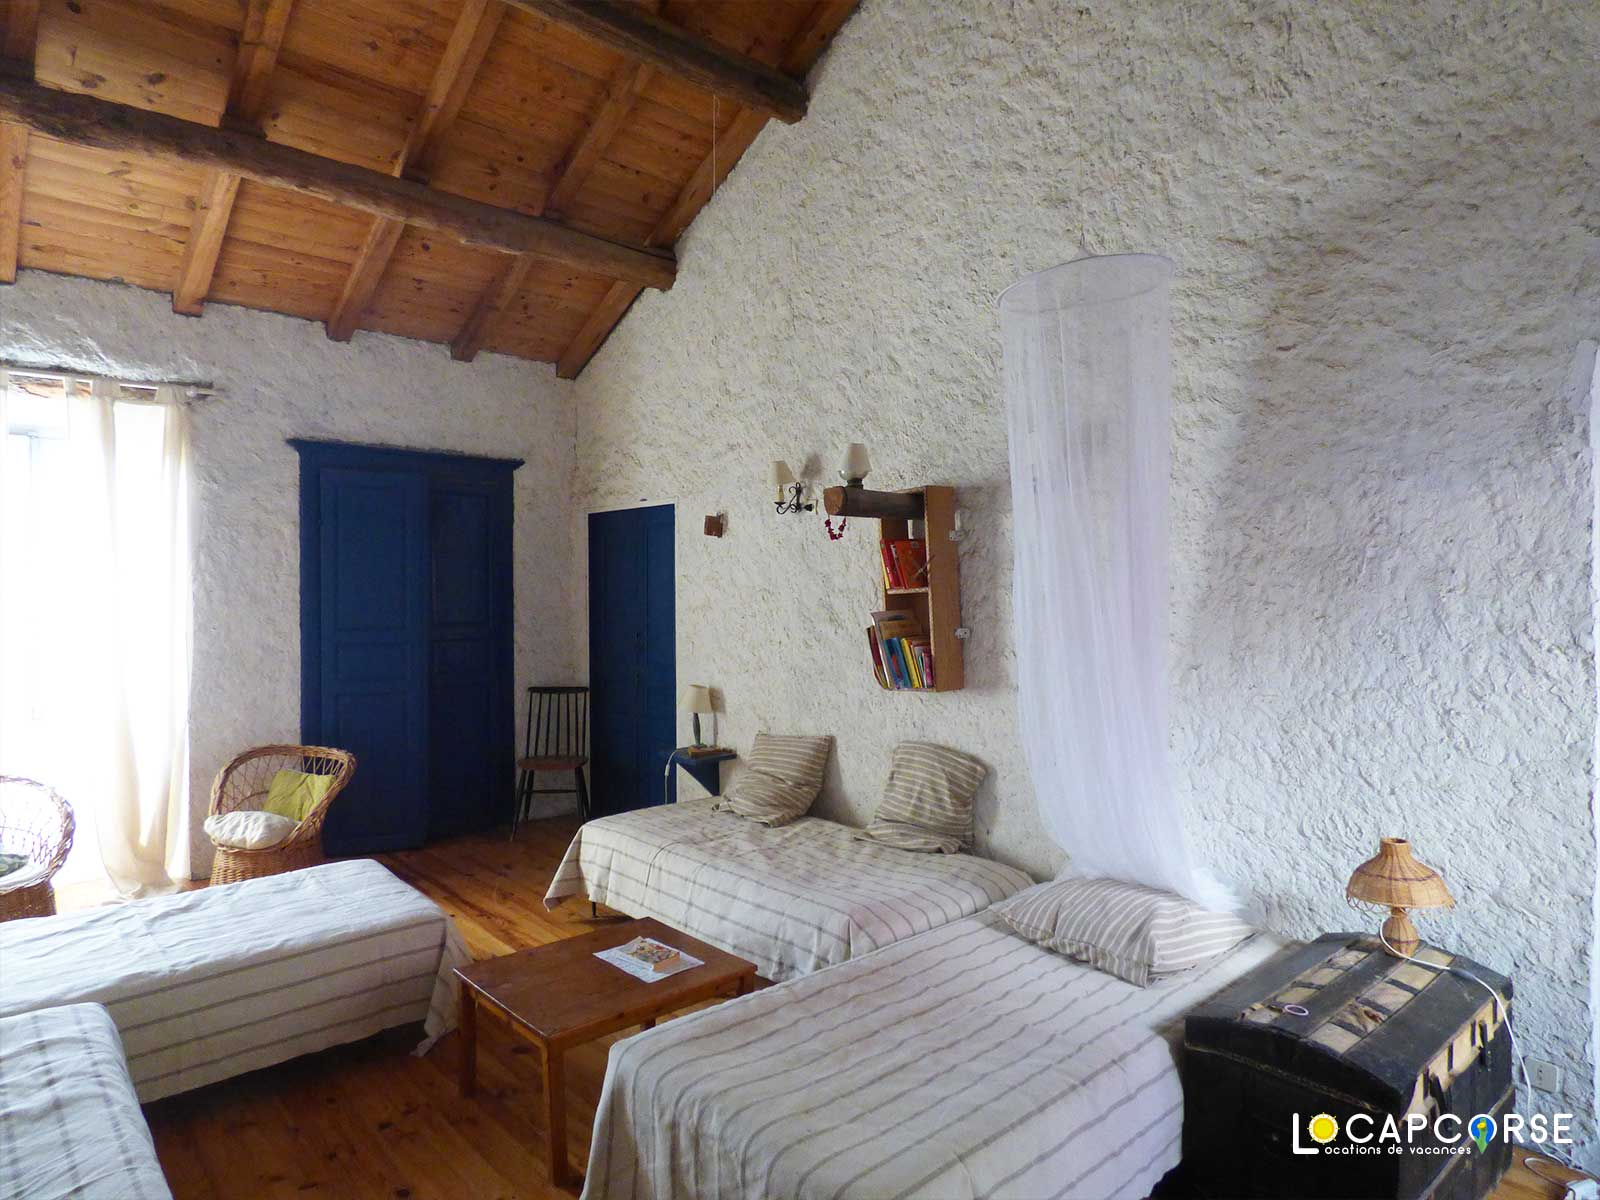 Locations Cap Corse - La chambre n°2 « dortoir » aux 4 lits simple